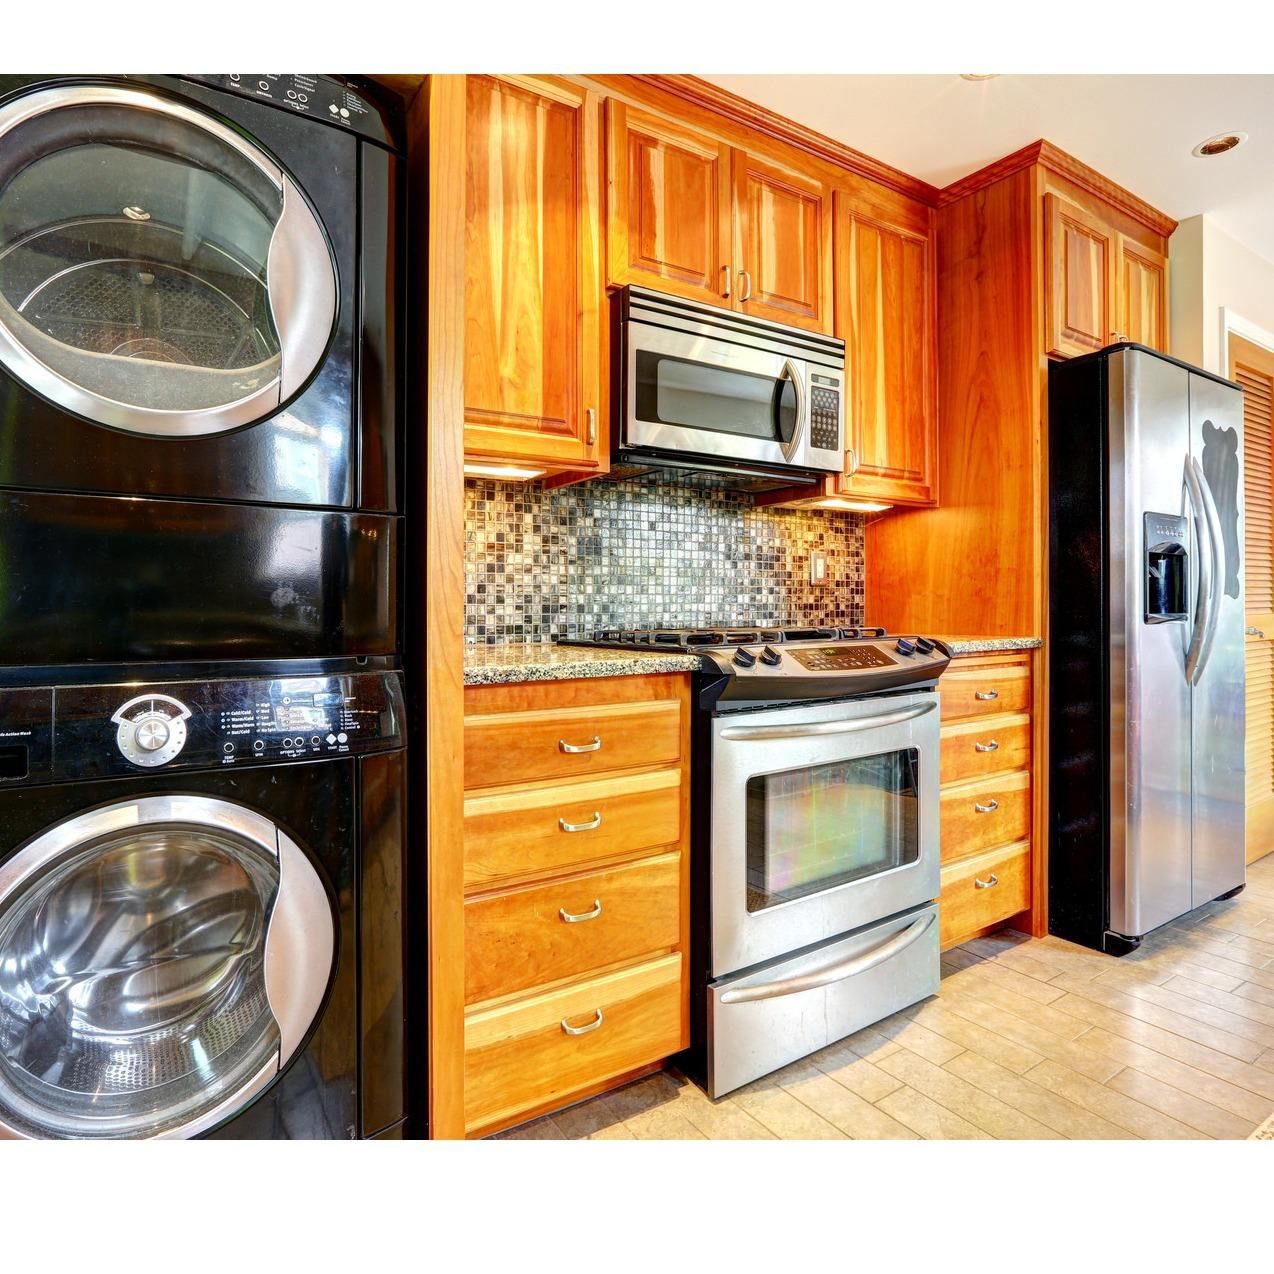 Appliance Repair Technology Experts - Ellicott City, MD - Appliance Rental & Repair Services